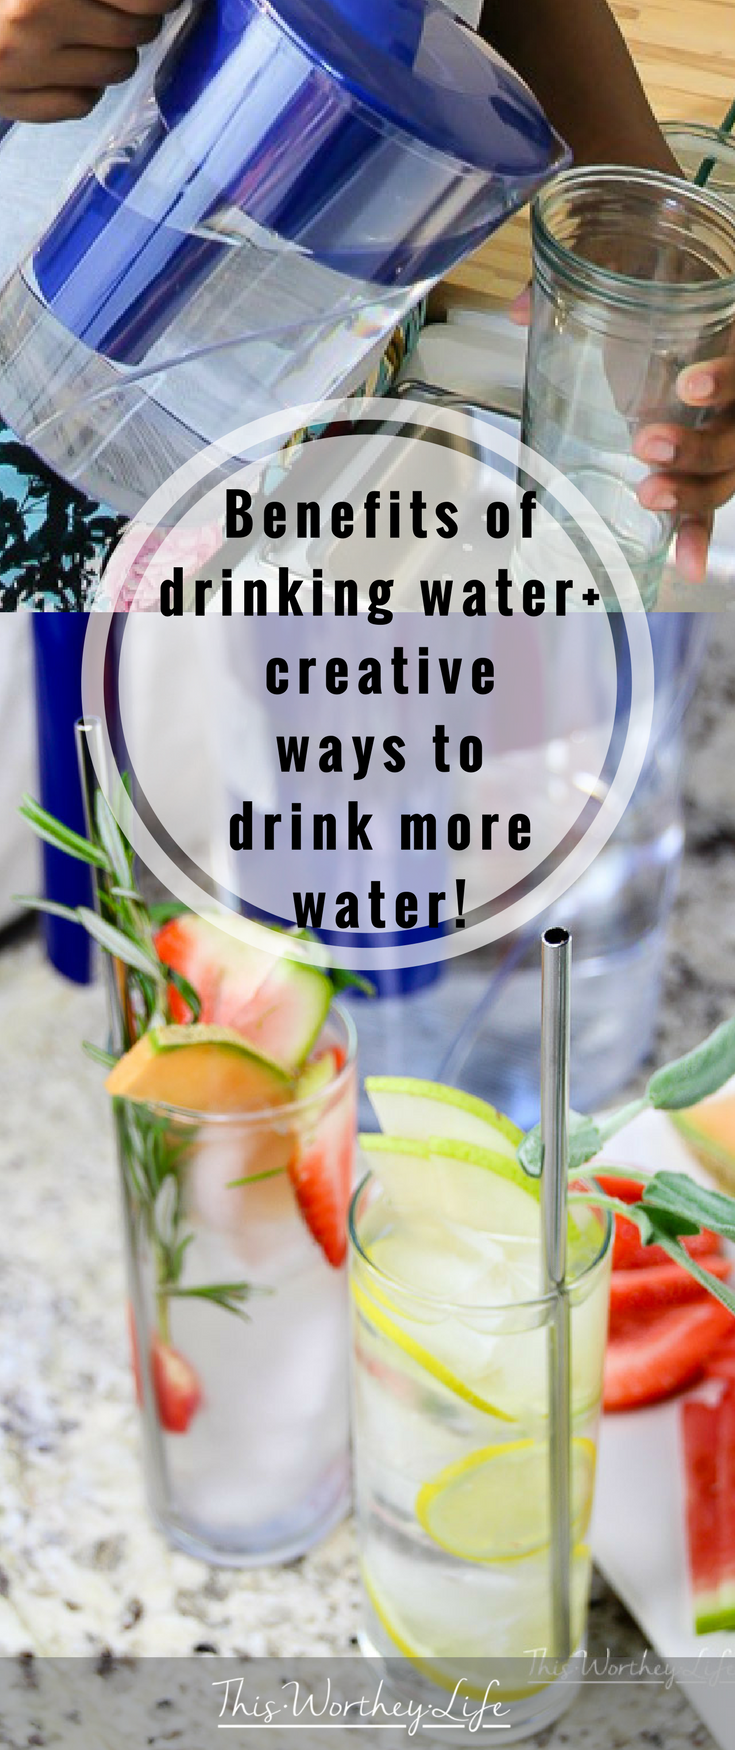 Looking for ways to drink more water? There are great benefits to drinking water everyday, and I'm sharing creative ways to drink more water!